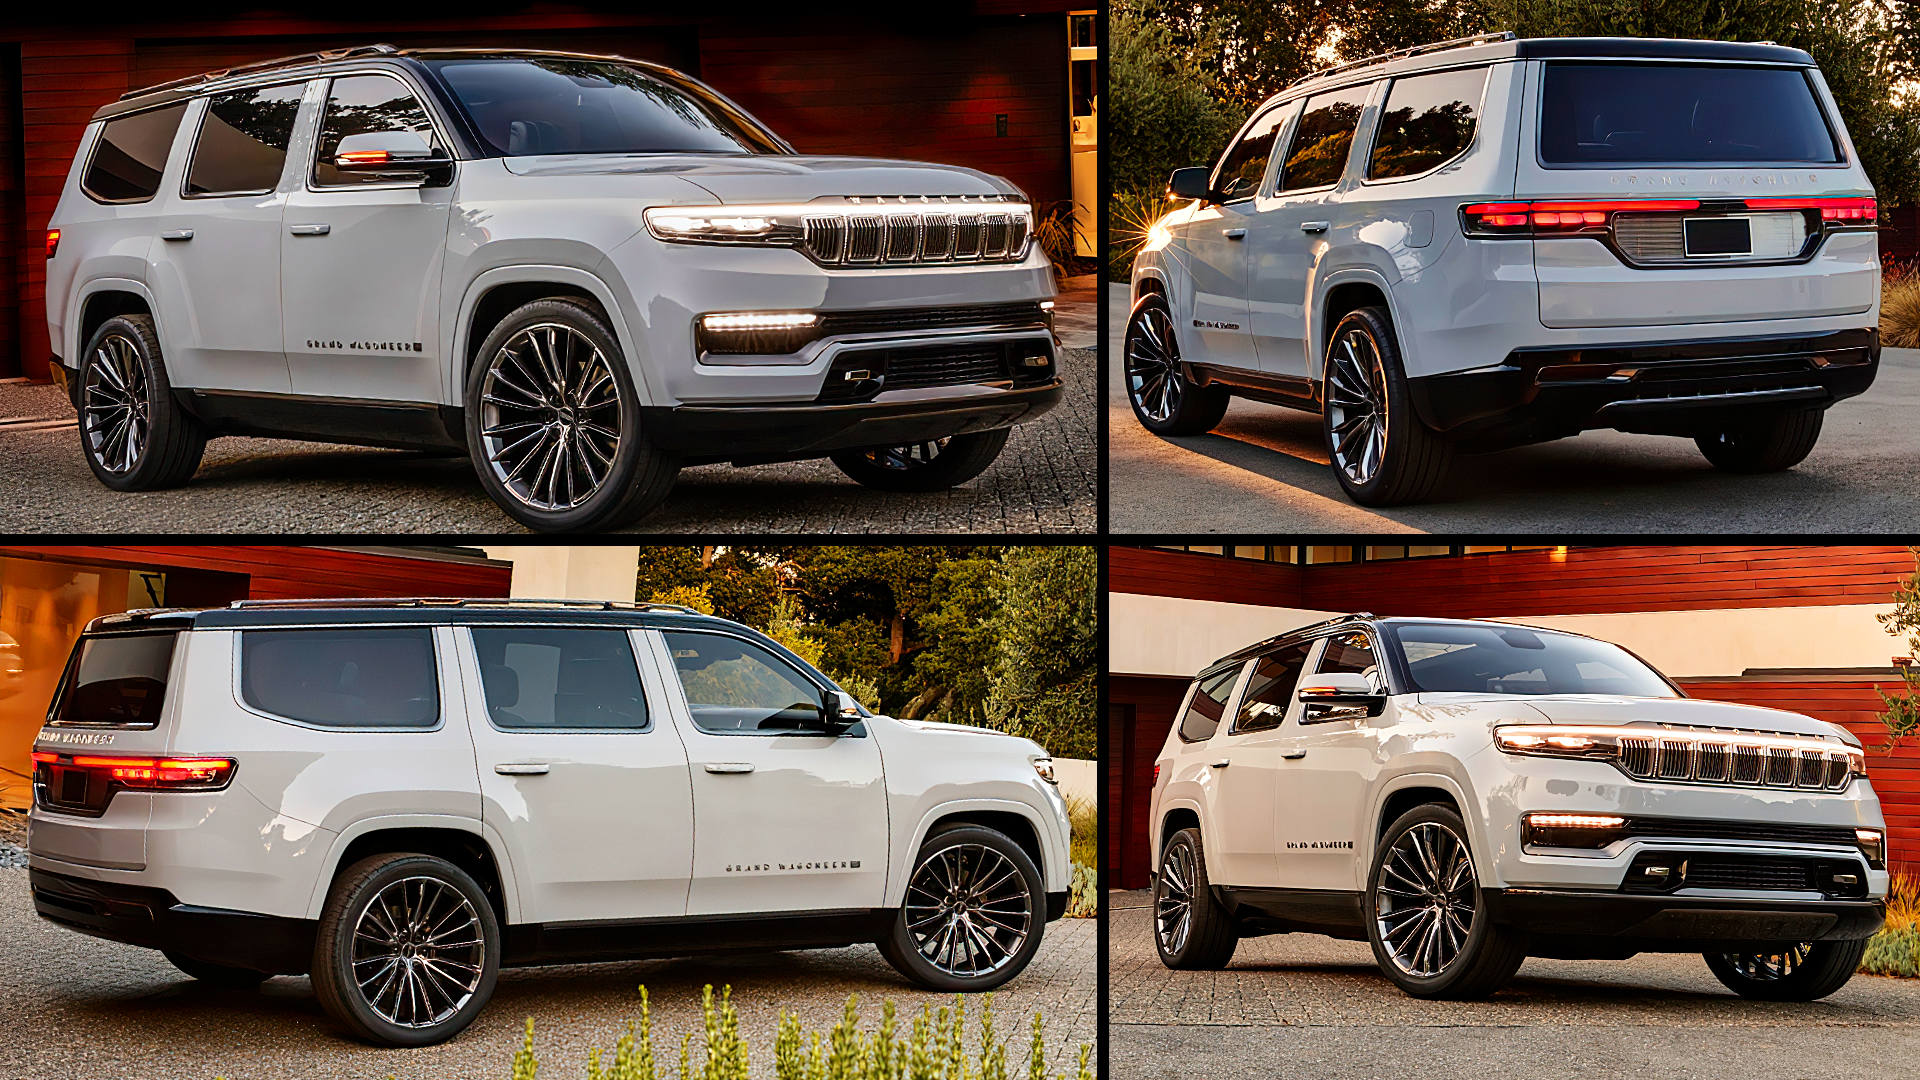 2022 Jeep Wagoneer Grand SUV Hybrid Images